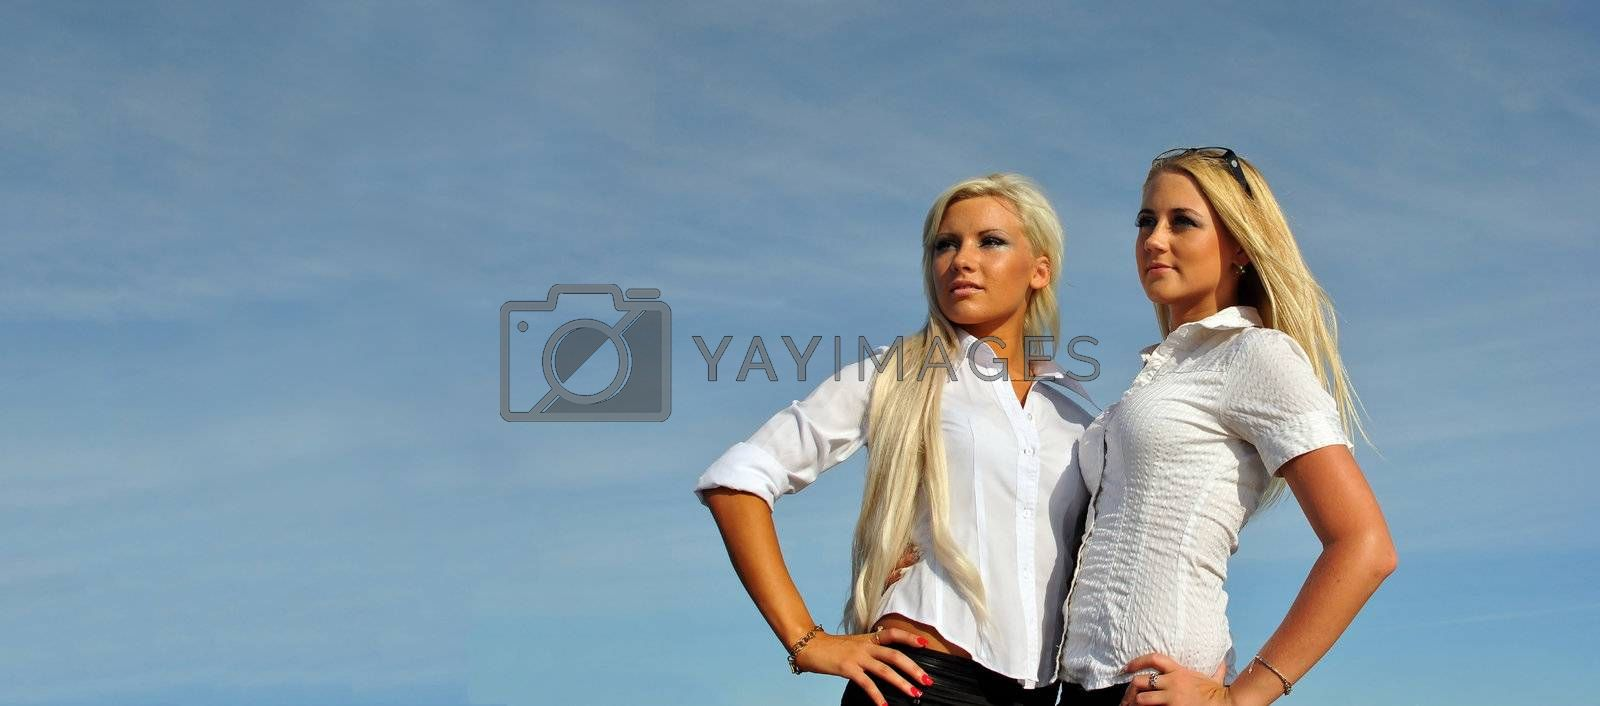 Two blonde girls on sky background. Perfect for placing your own advertisements on